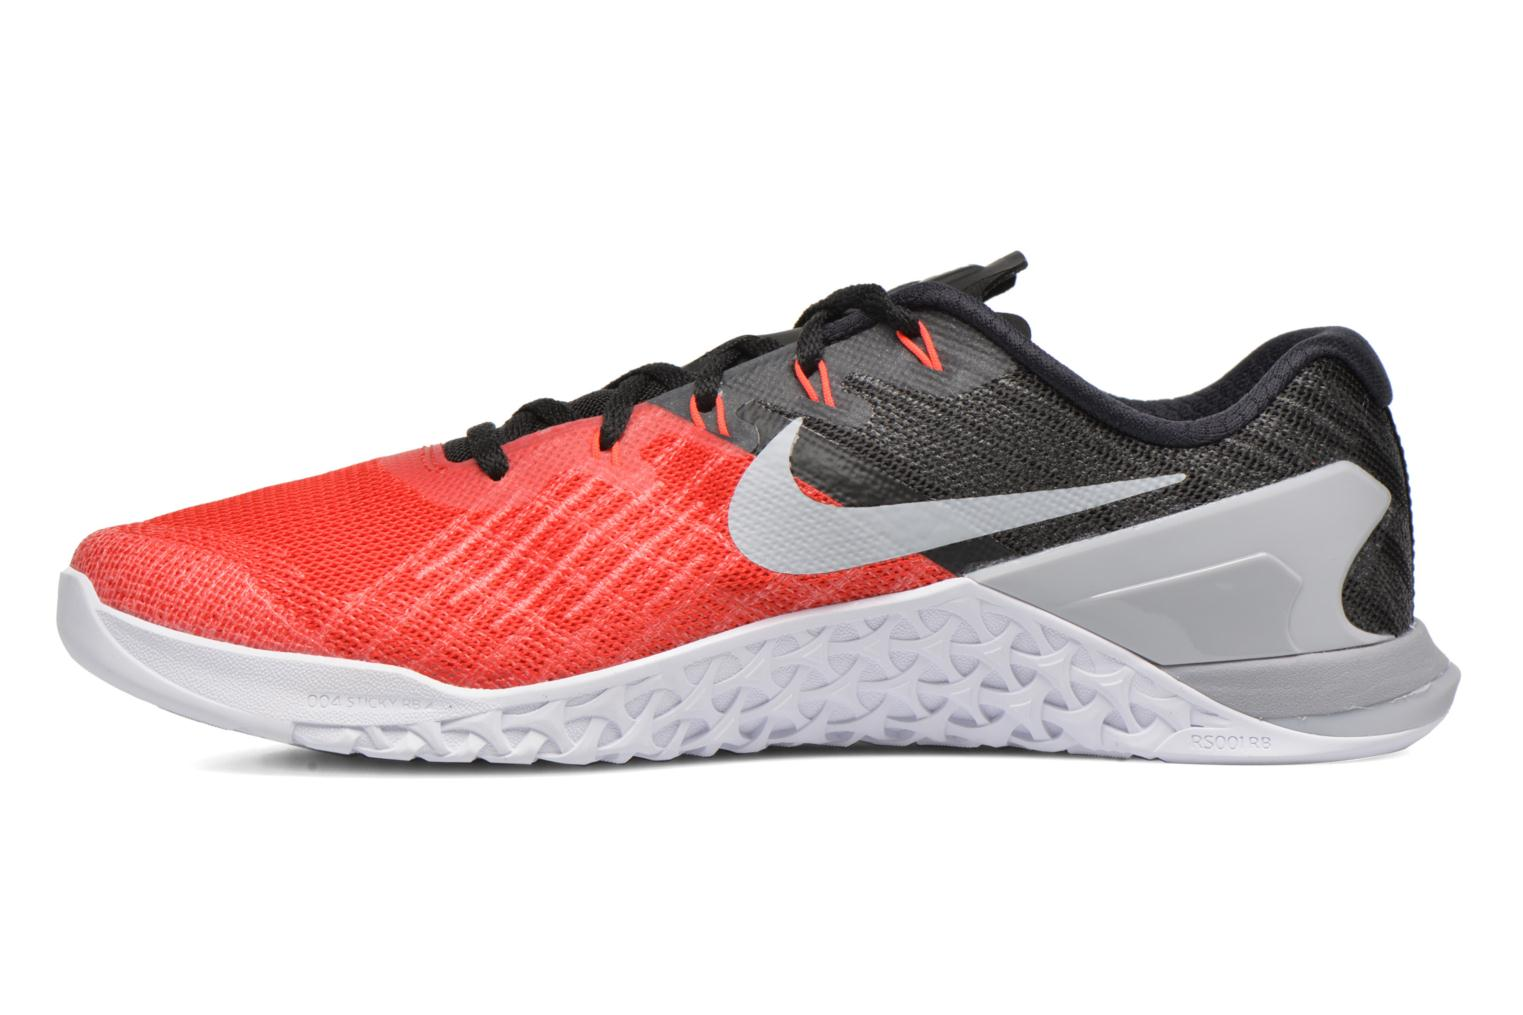 Chaussures de sport Nike Nike Metcon 3 Rouge vue face